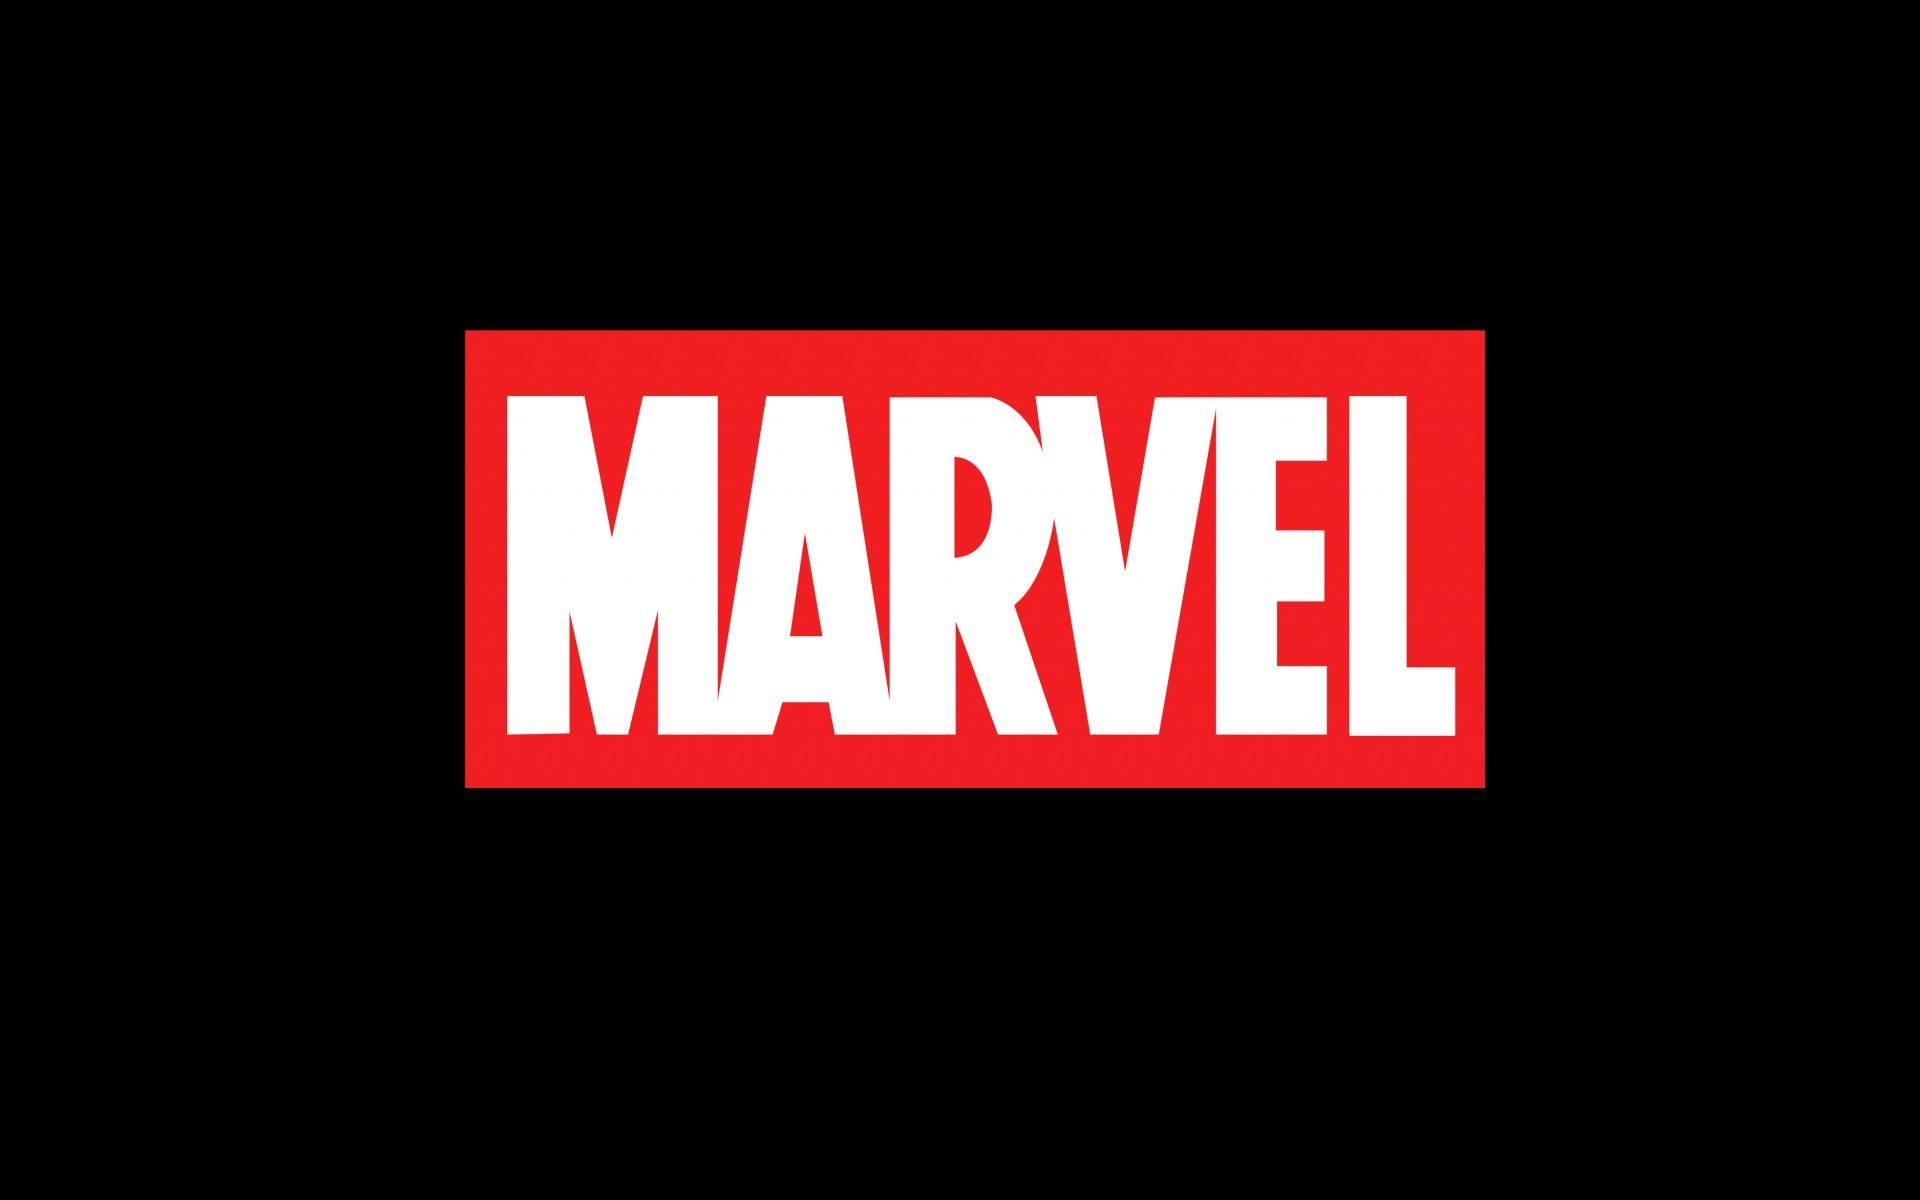 marvel studio marvel studio logo logo minimalism HD wallpaper 1920x1200